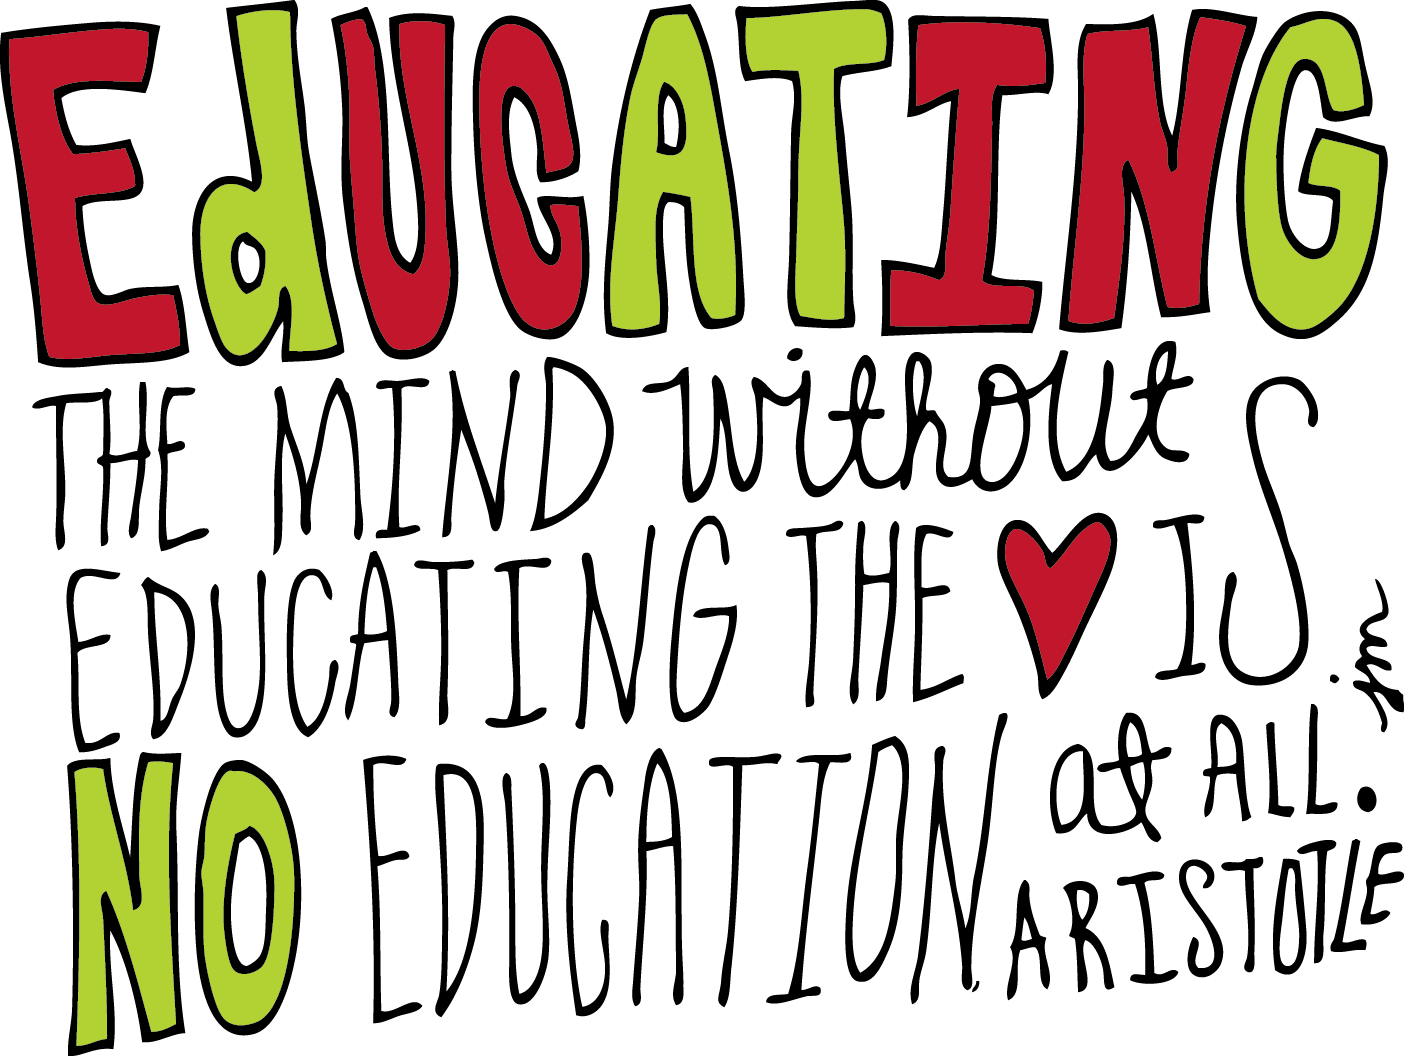 Aristotle quote on Education